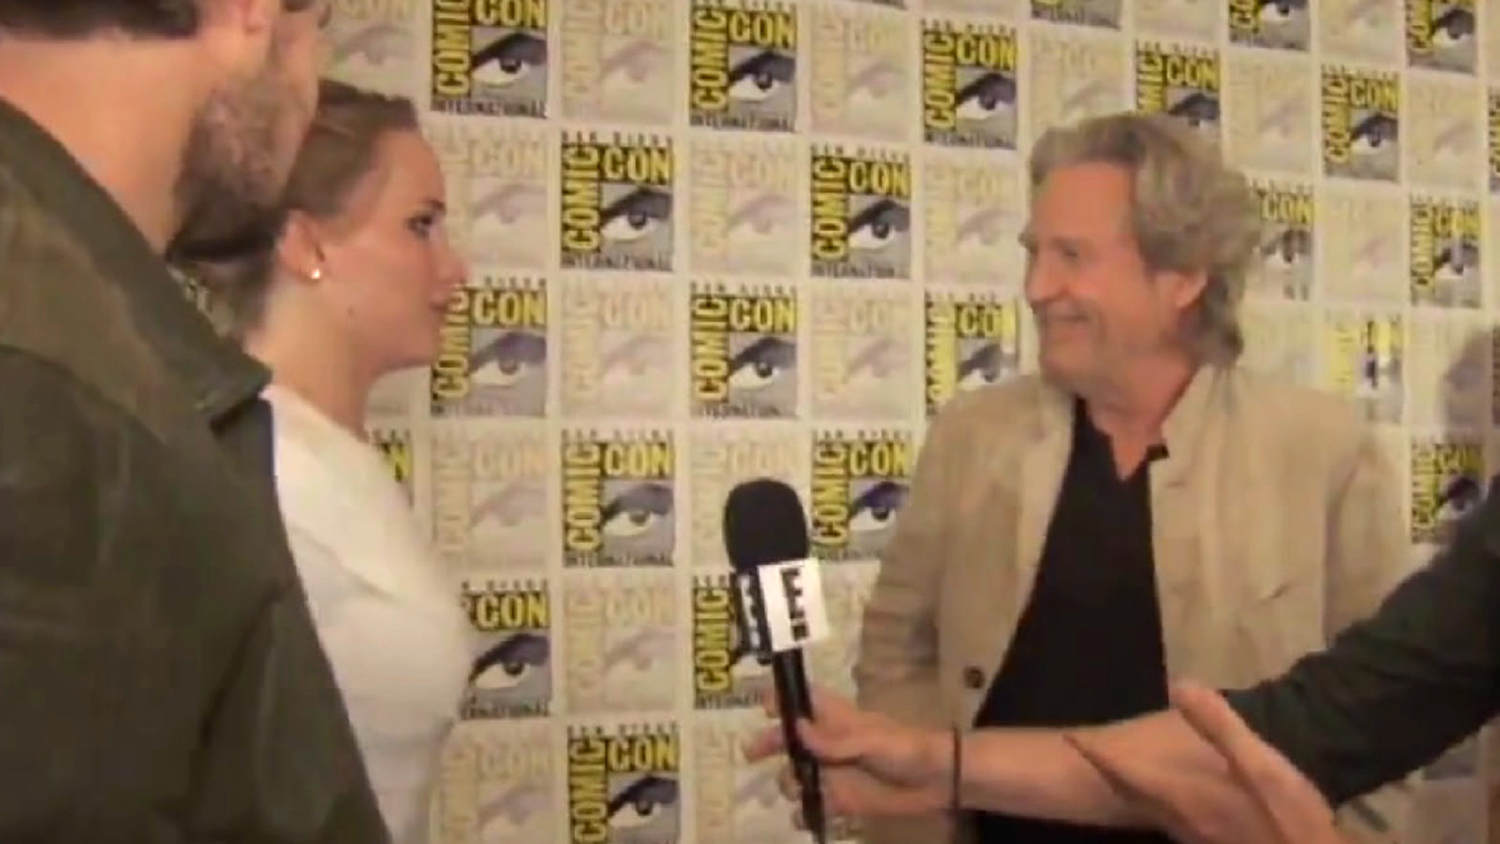 5. Jennifer Lawrence was so star-struck by Jeff Bridges that she went up to him twice at Comic-Con. Both stars interviewed one another and professed a genuine love for one another.